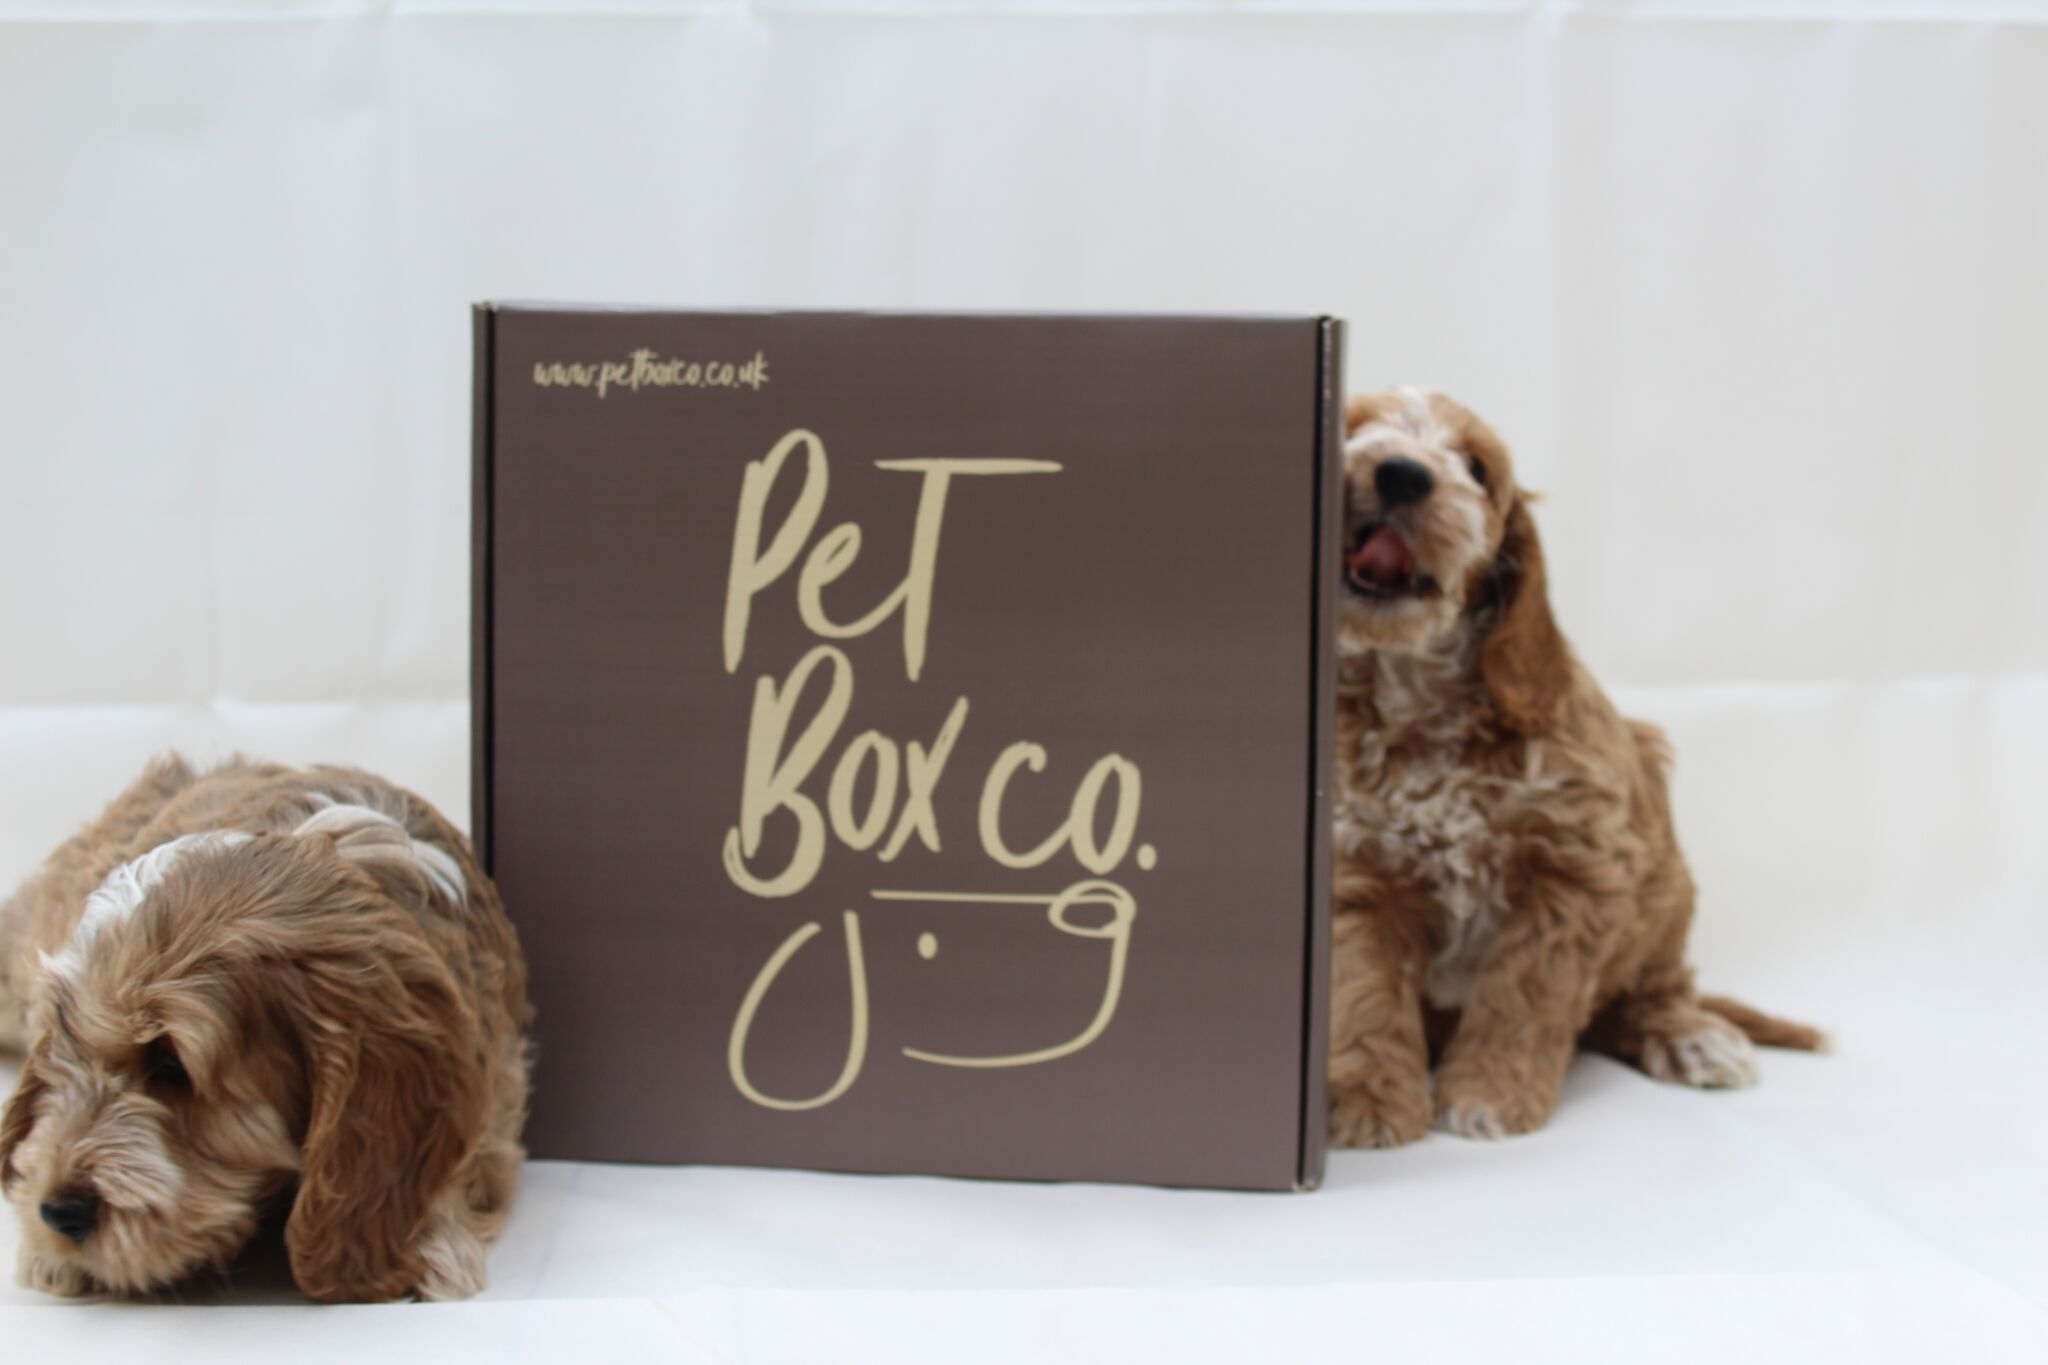 12 Month Pet Box Subscription Plan